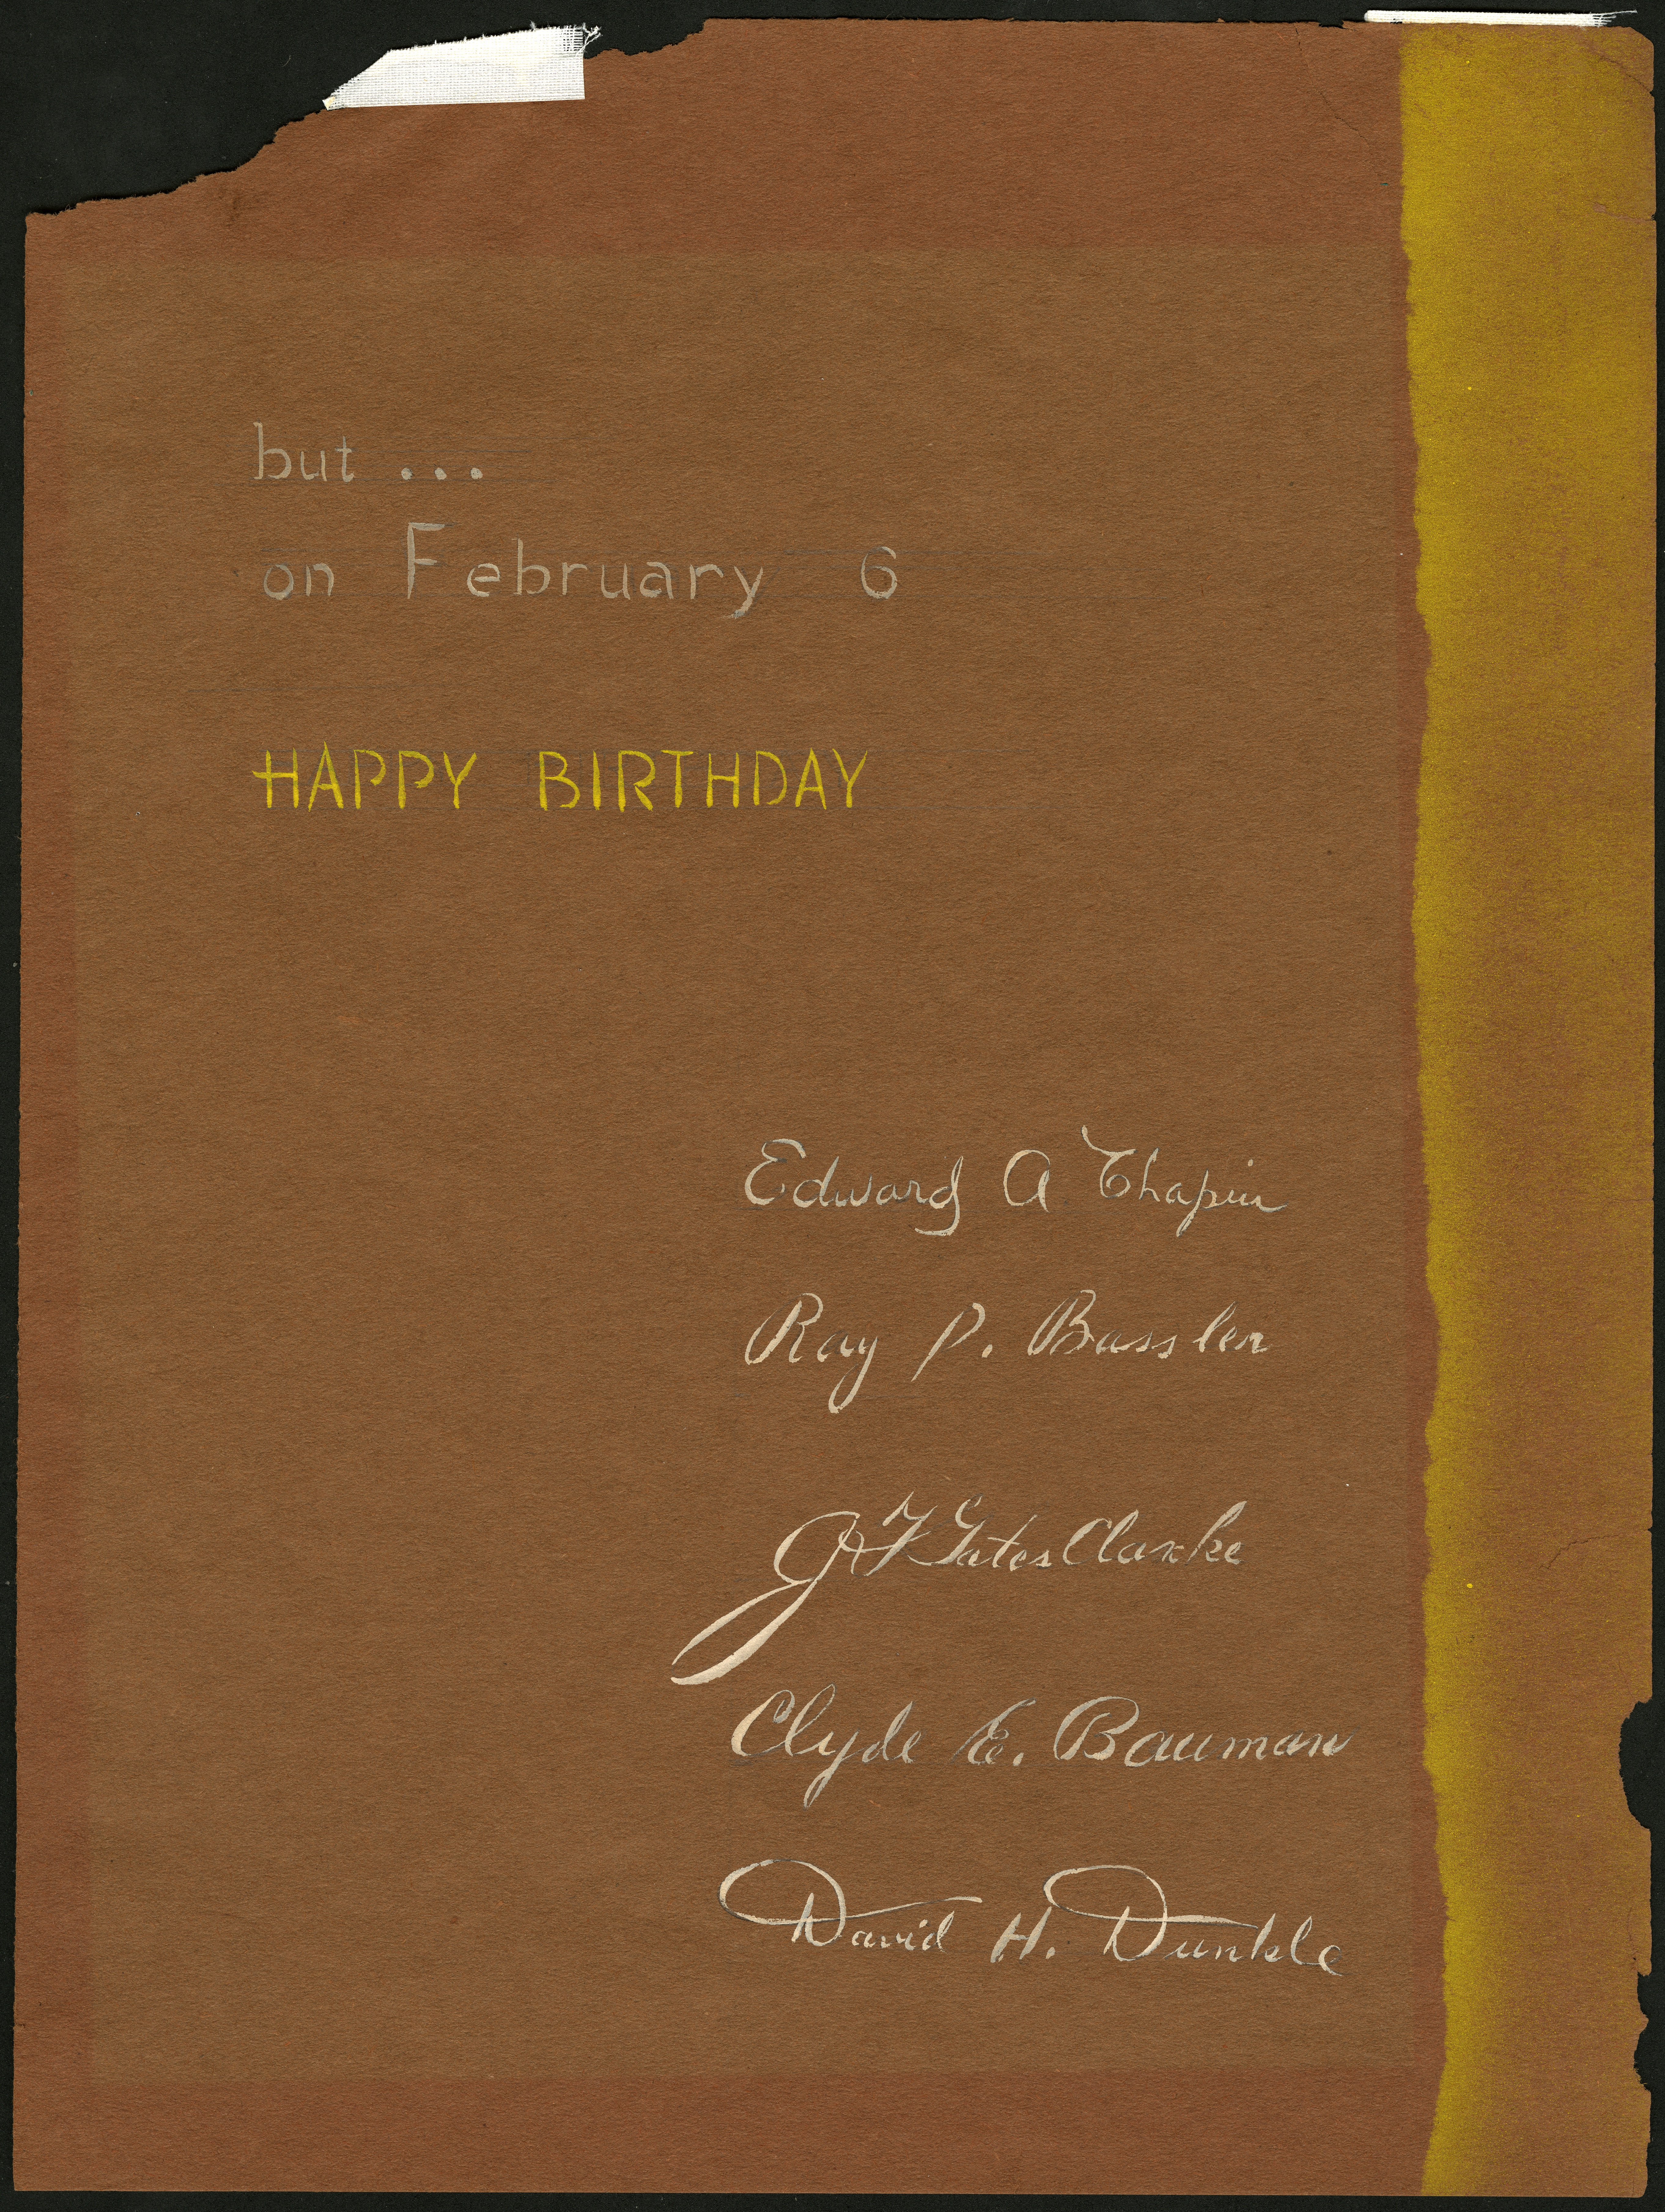 "Reverse of card says ""But on February 6, Happy Birthday, Edward A. Chapin, Ray S. Bassler, J.F. Gate"